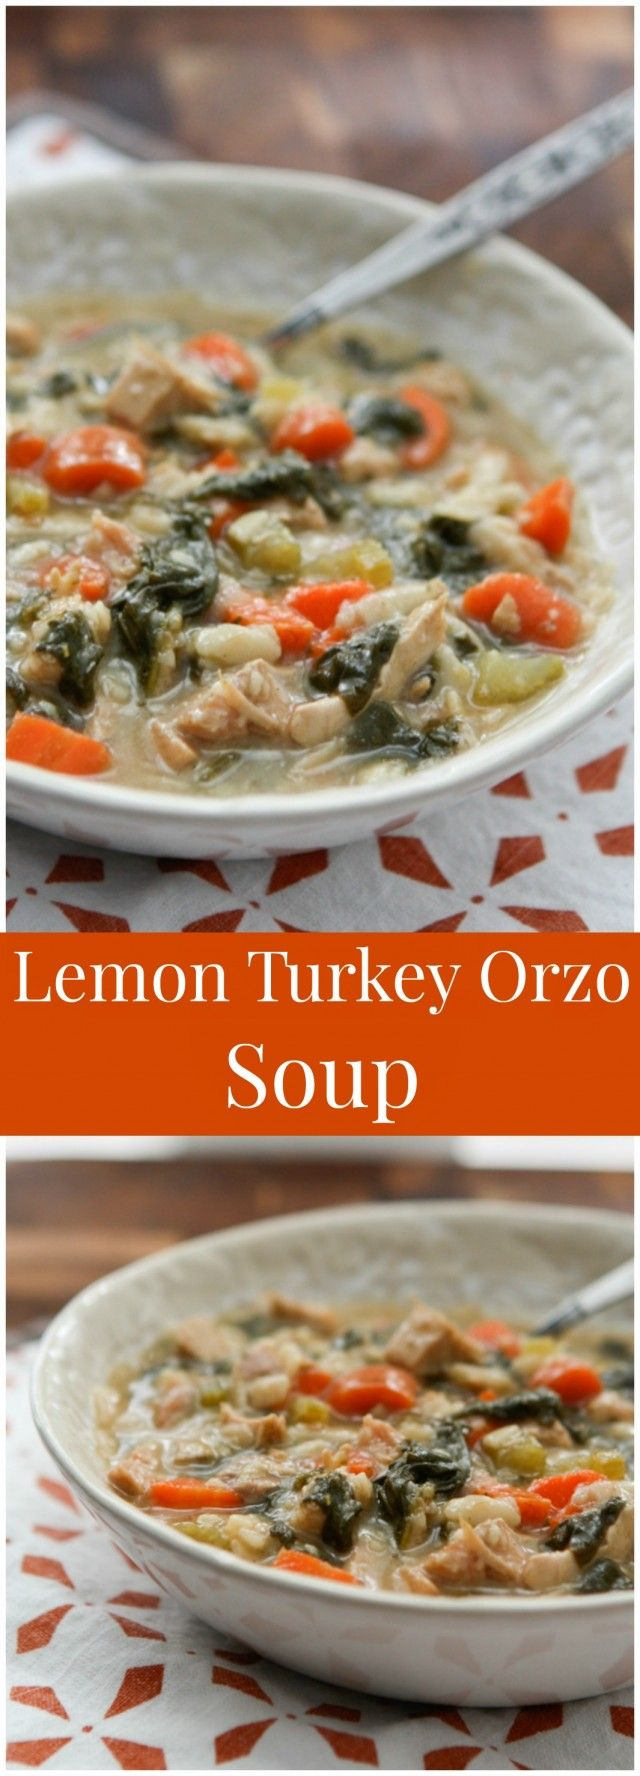 Lemon Turkey Orzo Soup Recipe Orzo Soup Healthy Soup Recipes Soup